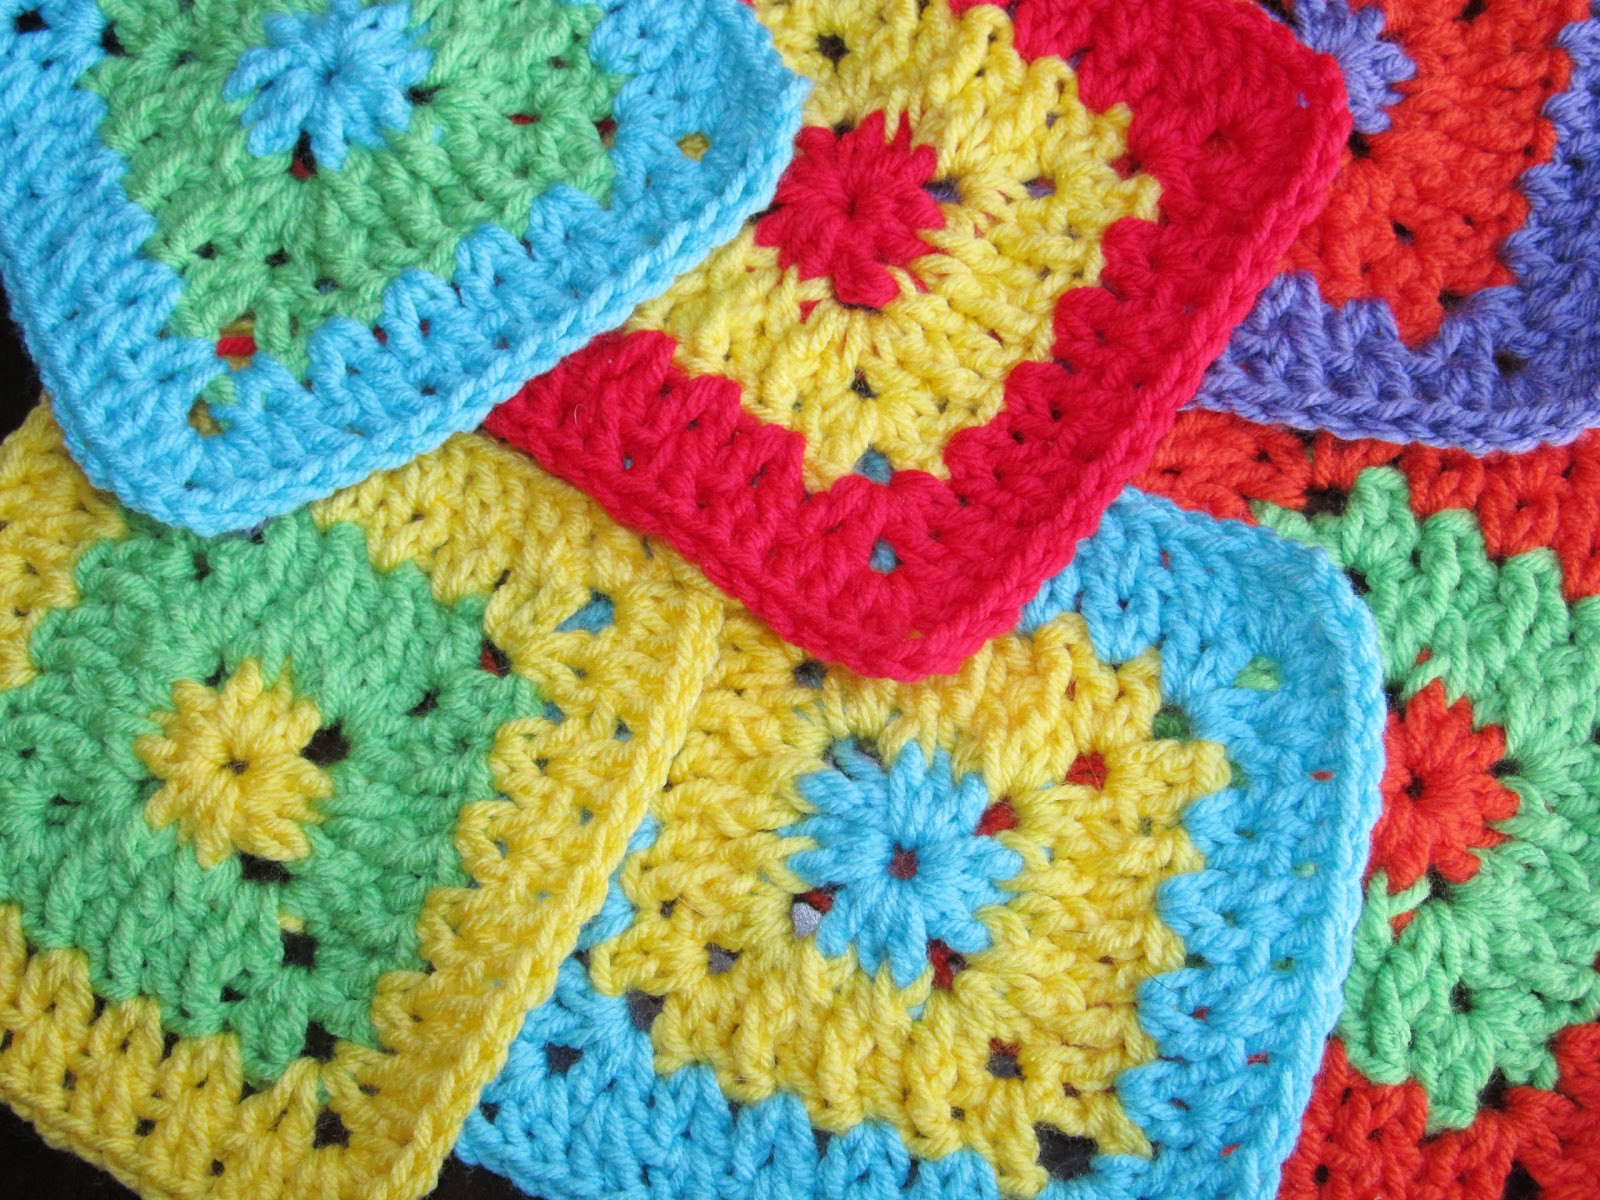 Crochet Squares Unique Smoothfox Crochet and Knit Smoothfox Cool 2b Square Of Charming 43 Ideas Crochet Squares